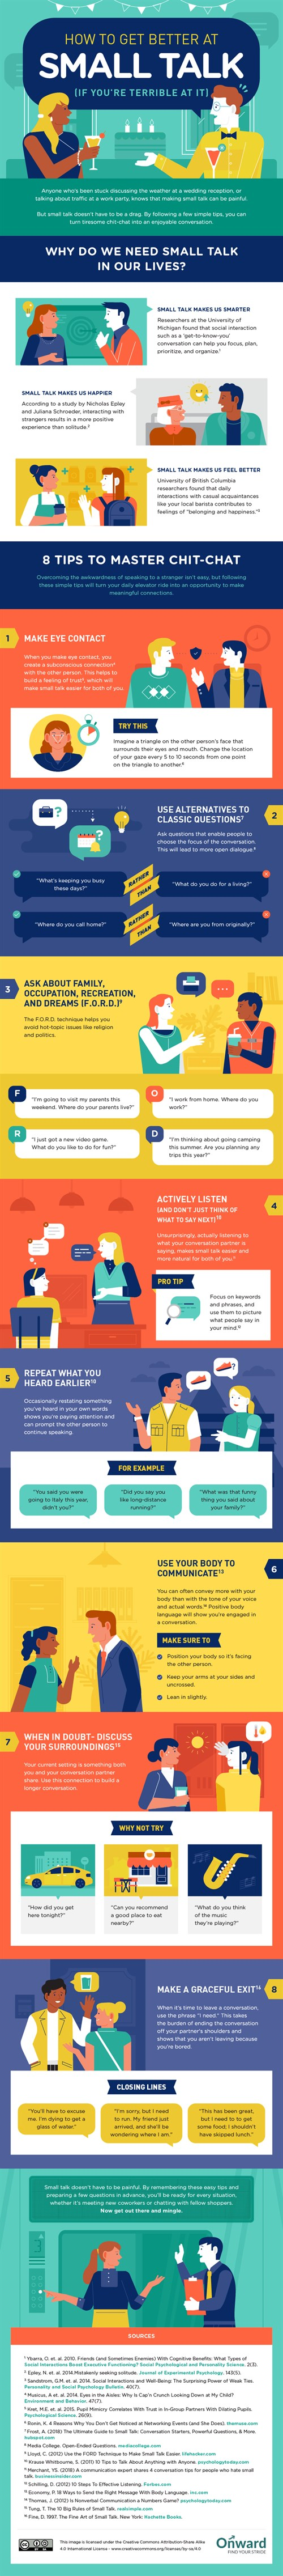 How to Get Better at Small Talk